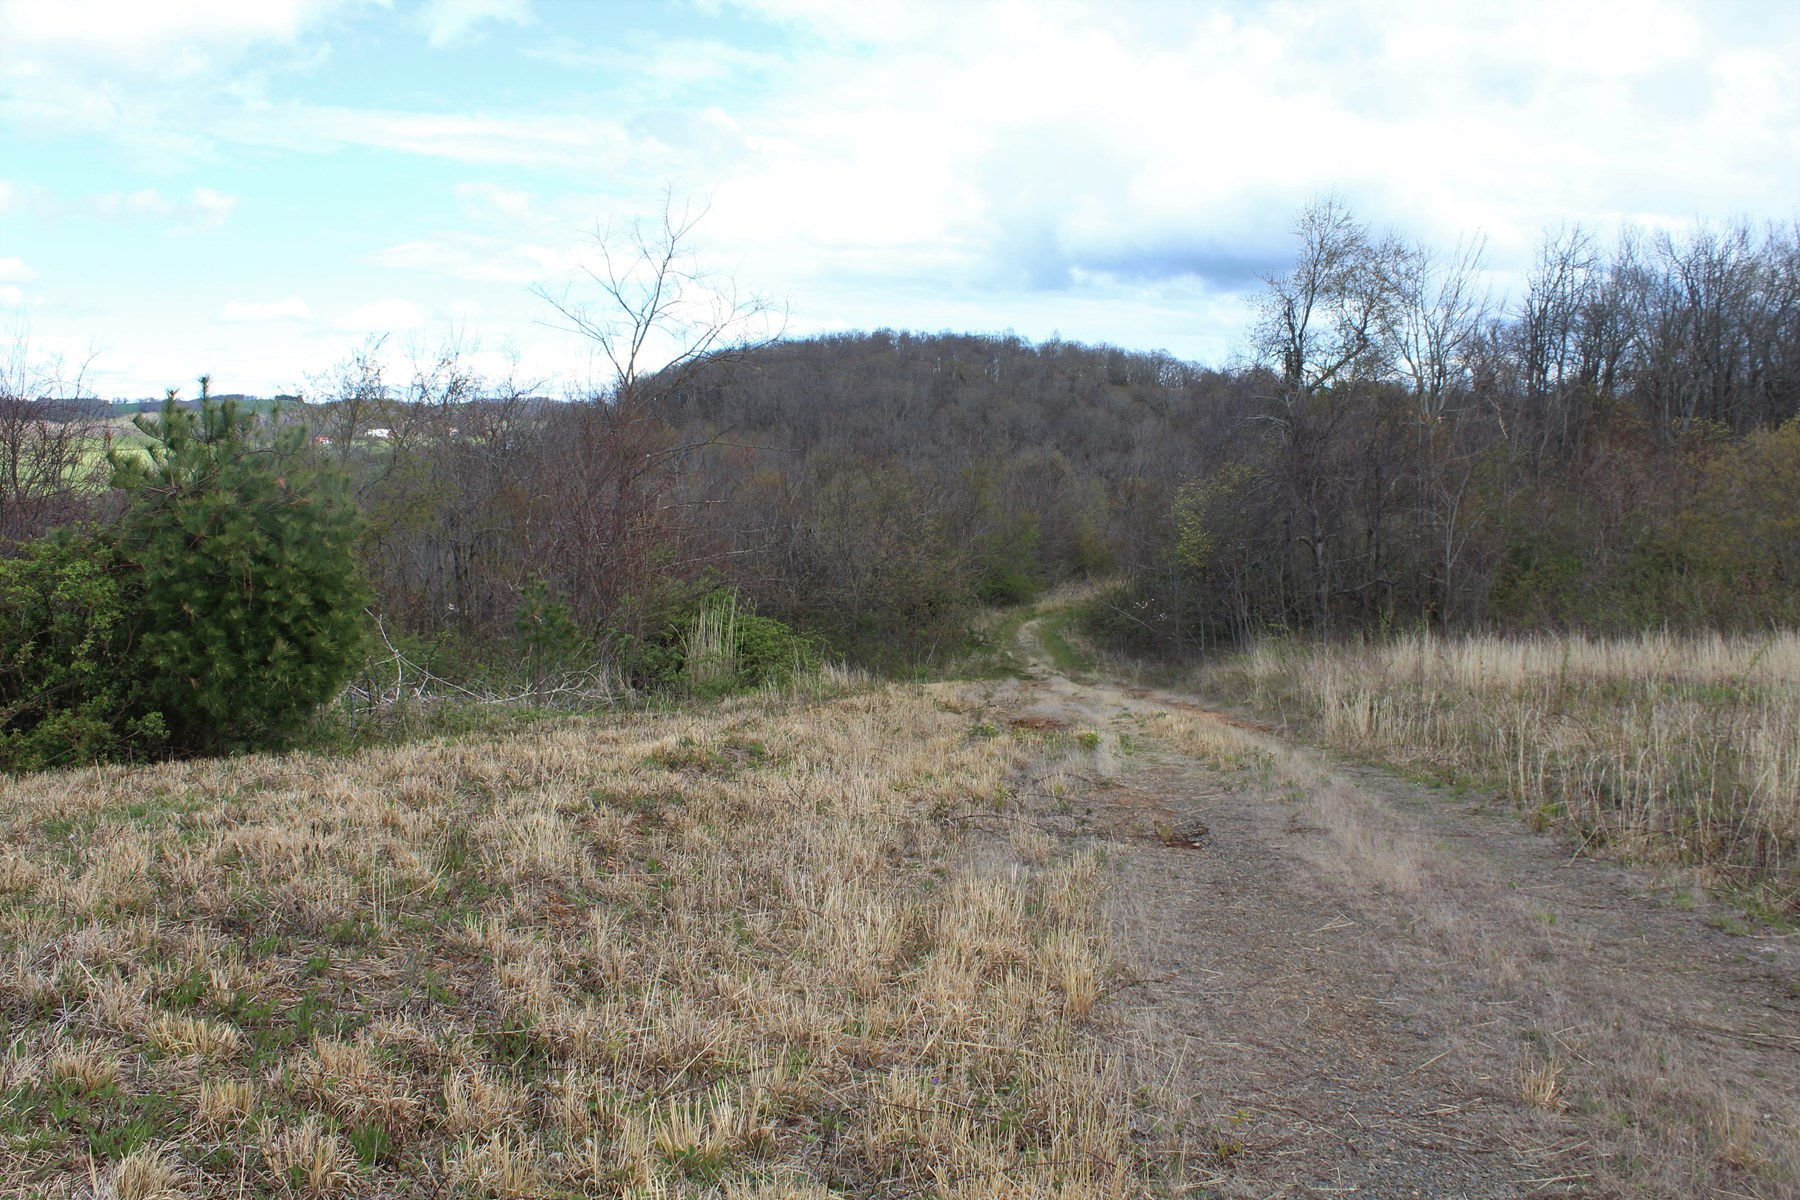 2.18  ACRES OF LAND LOCATED IN PATRICK COUNTY, VIRGINIA